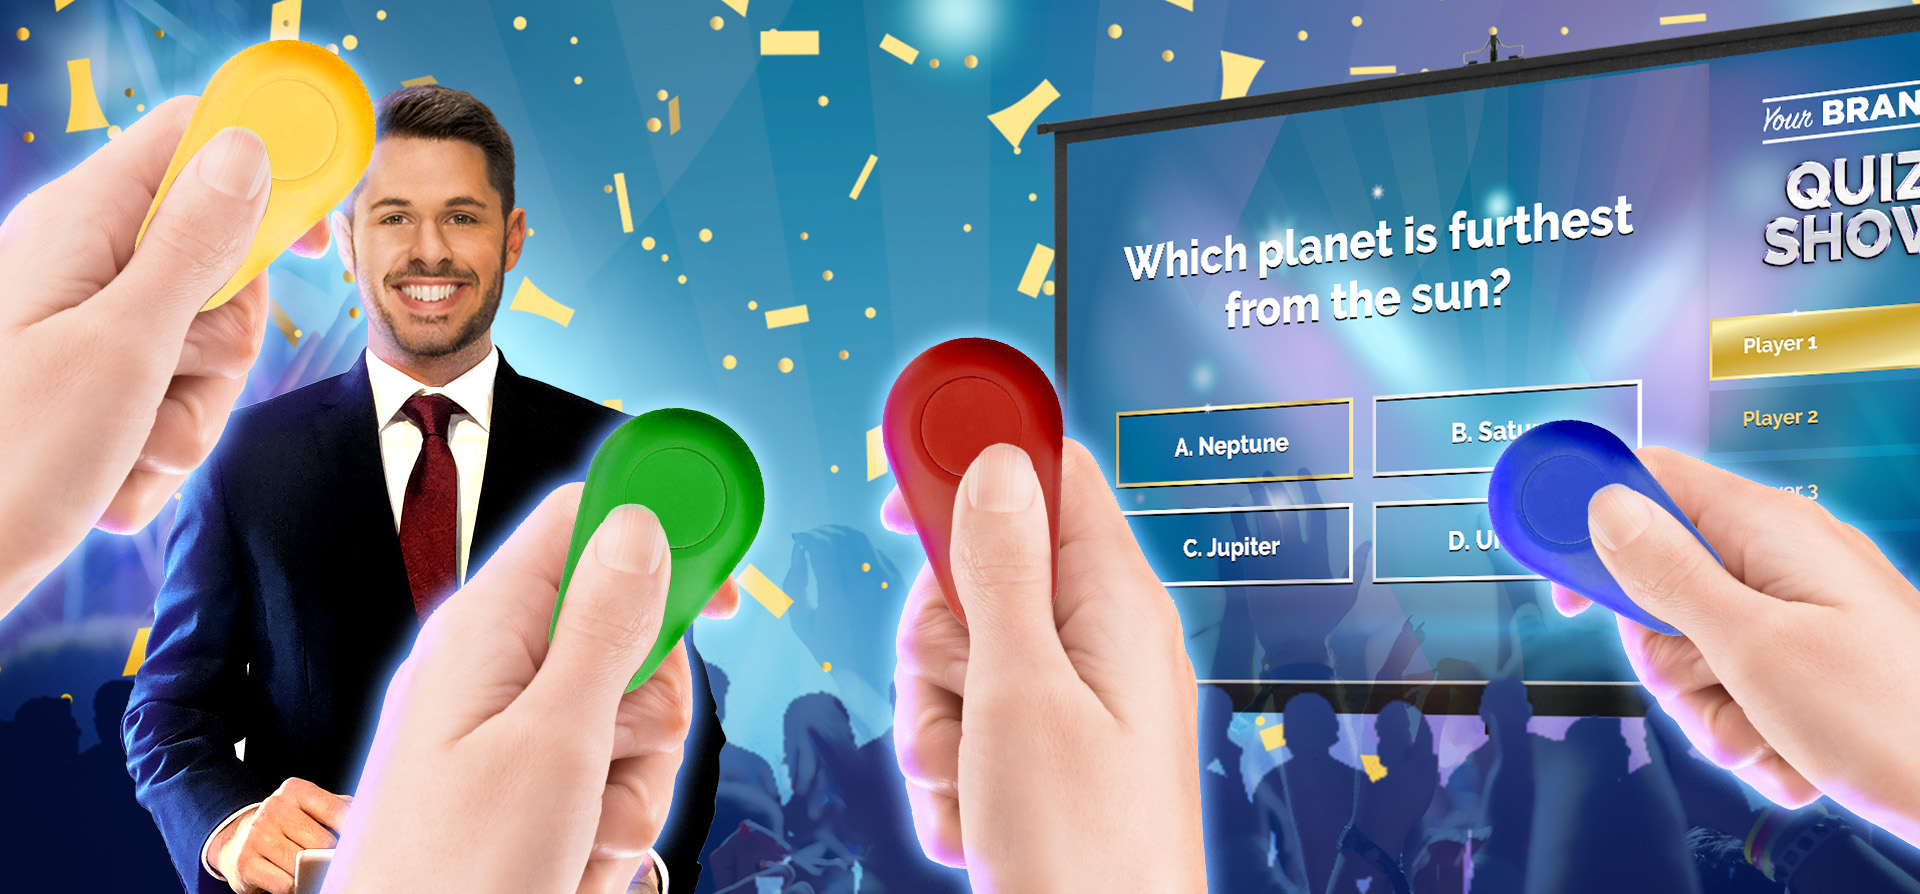 customisable_activation_game_developer_sydney_quiz_show_bluetooth_buzzer_ios_screen_multiplayer_22